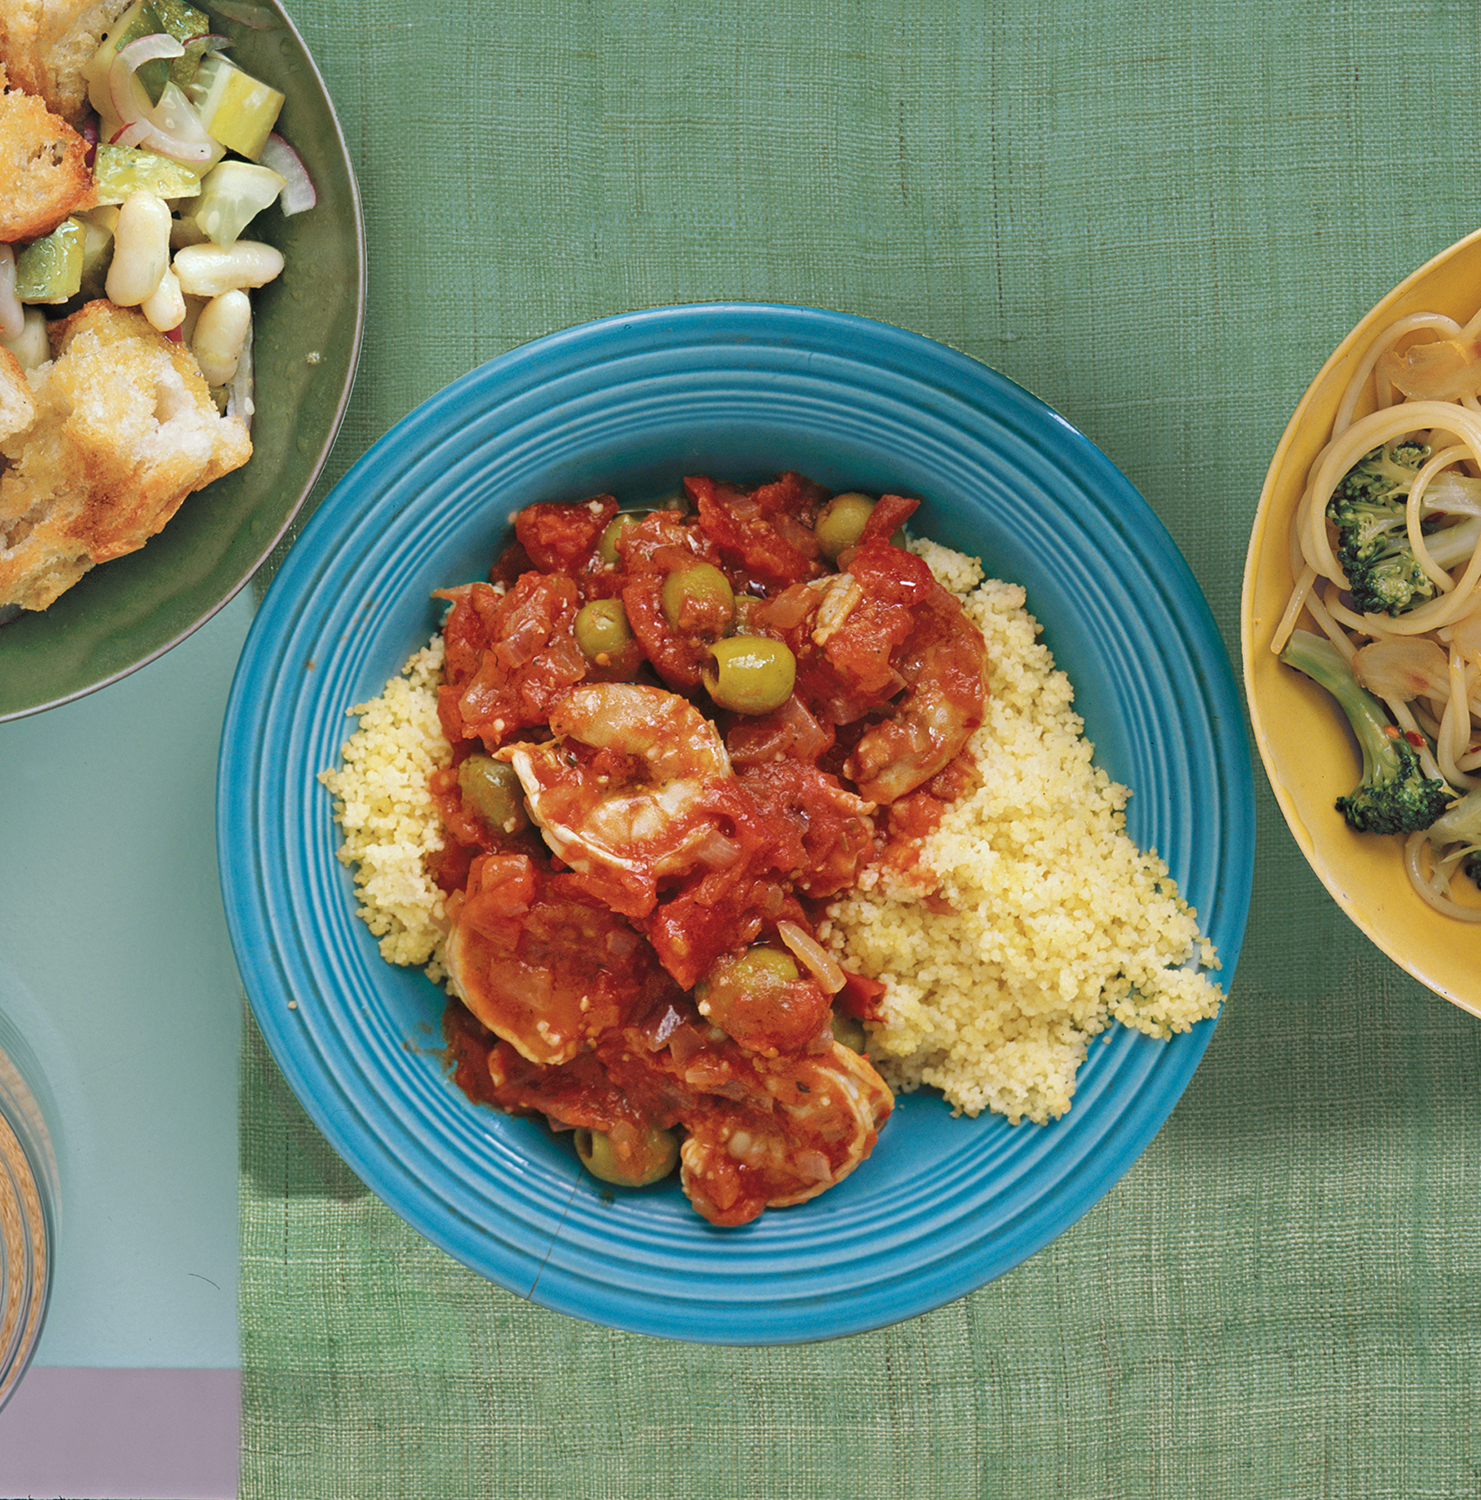 Simple Dinner Ideas: Shrimp With Tomatoes and Olives